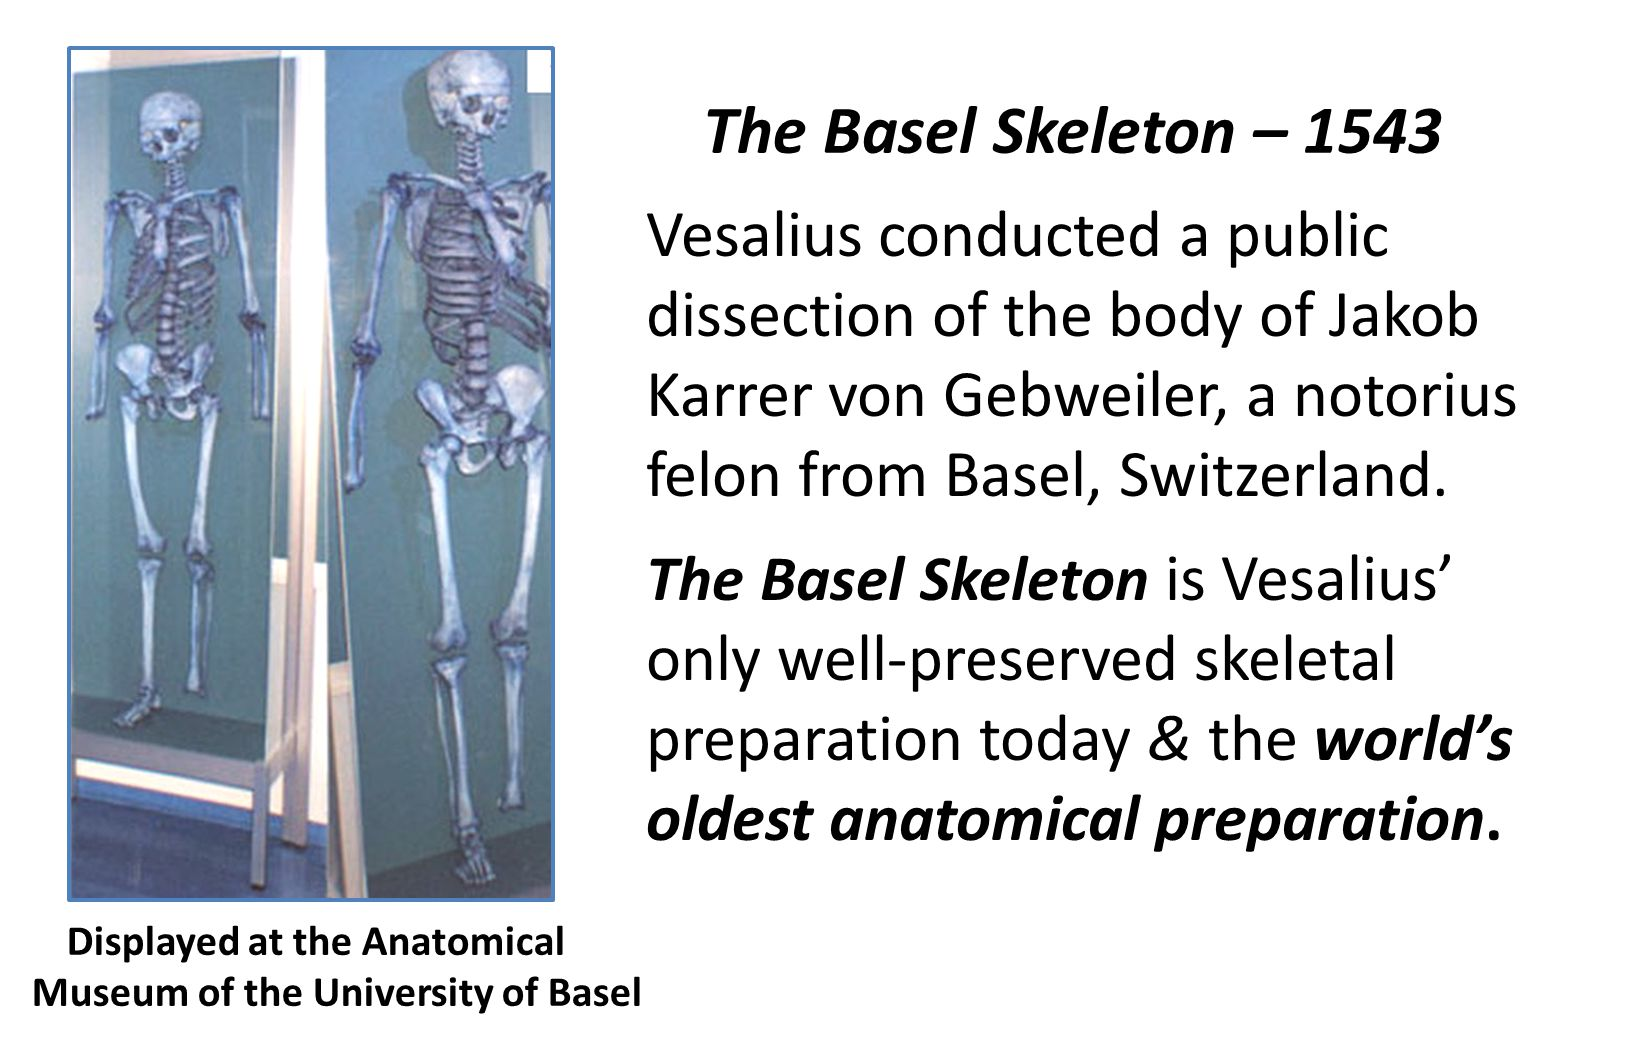 The Basel Skeleton – 1543 Vesalius conducted a public dissection of the body of Jakob Karrer von Gebweiler, a notorius felon from Basel, Switzerland.